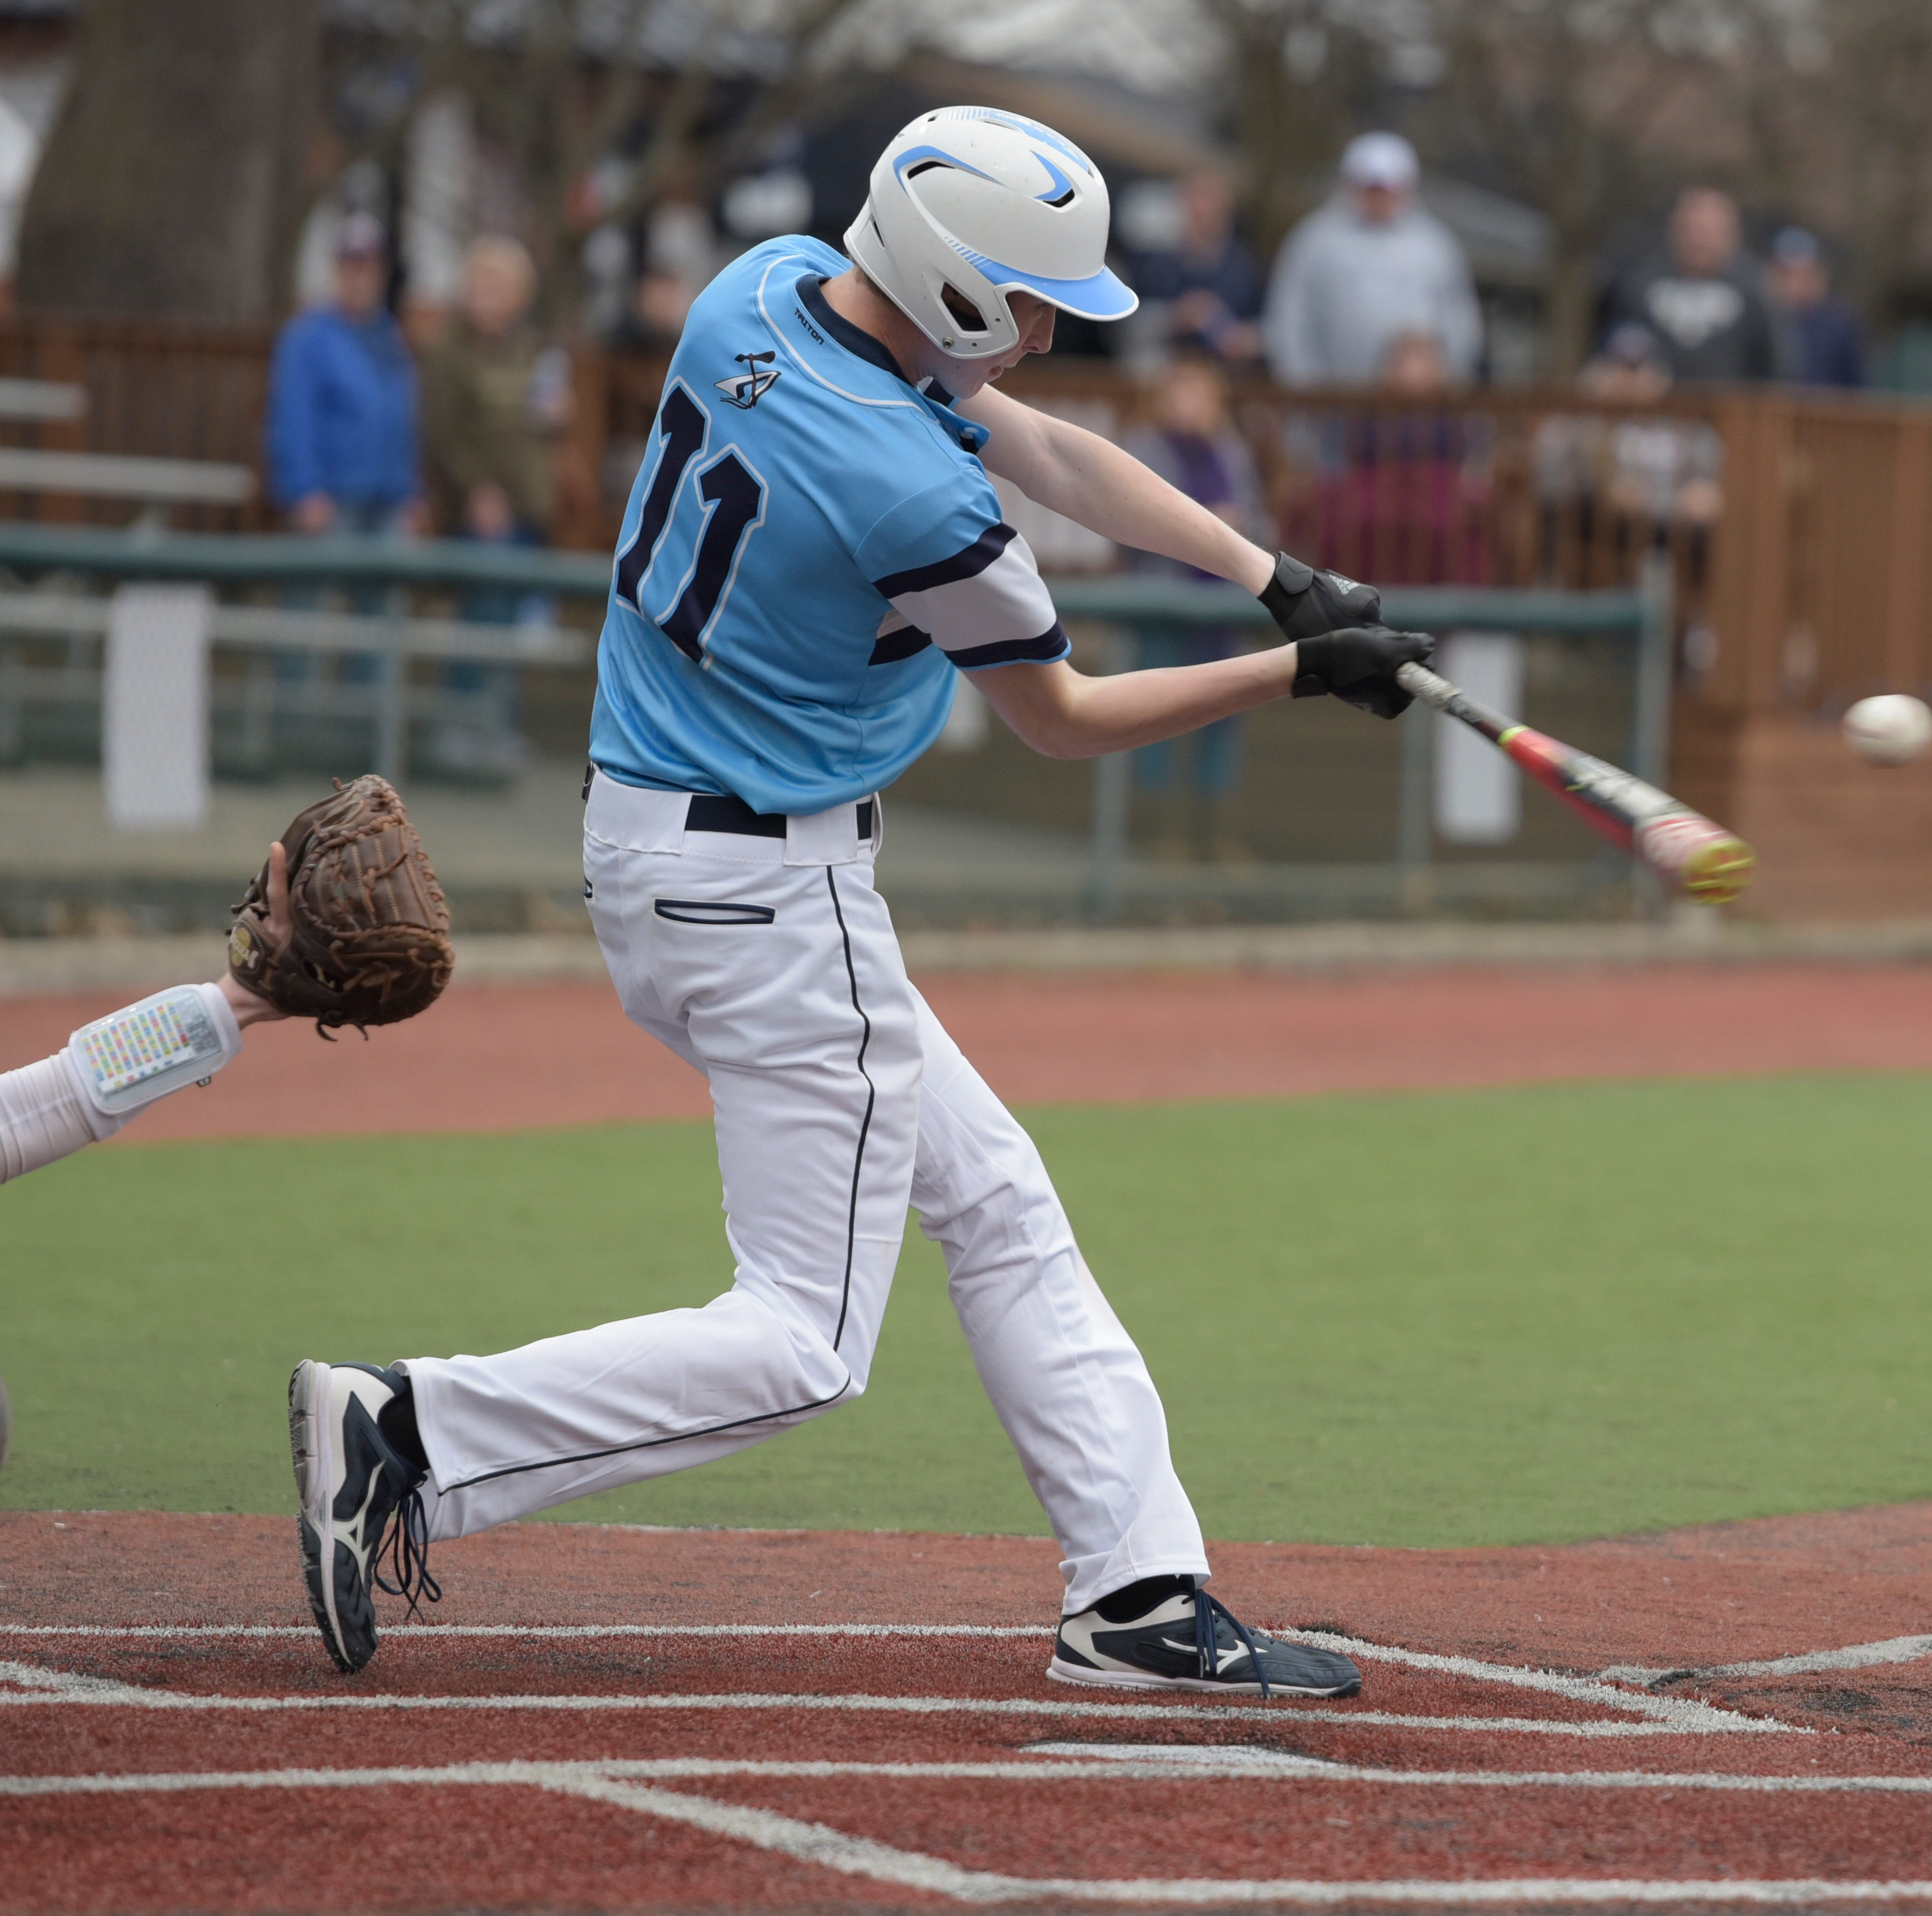 DAILY DIGEST: Adena baseball beats Westfall behind Garrison's complete game